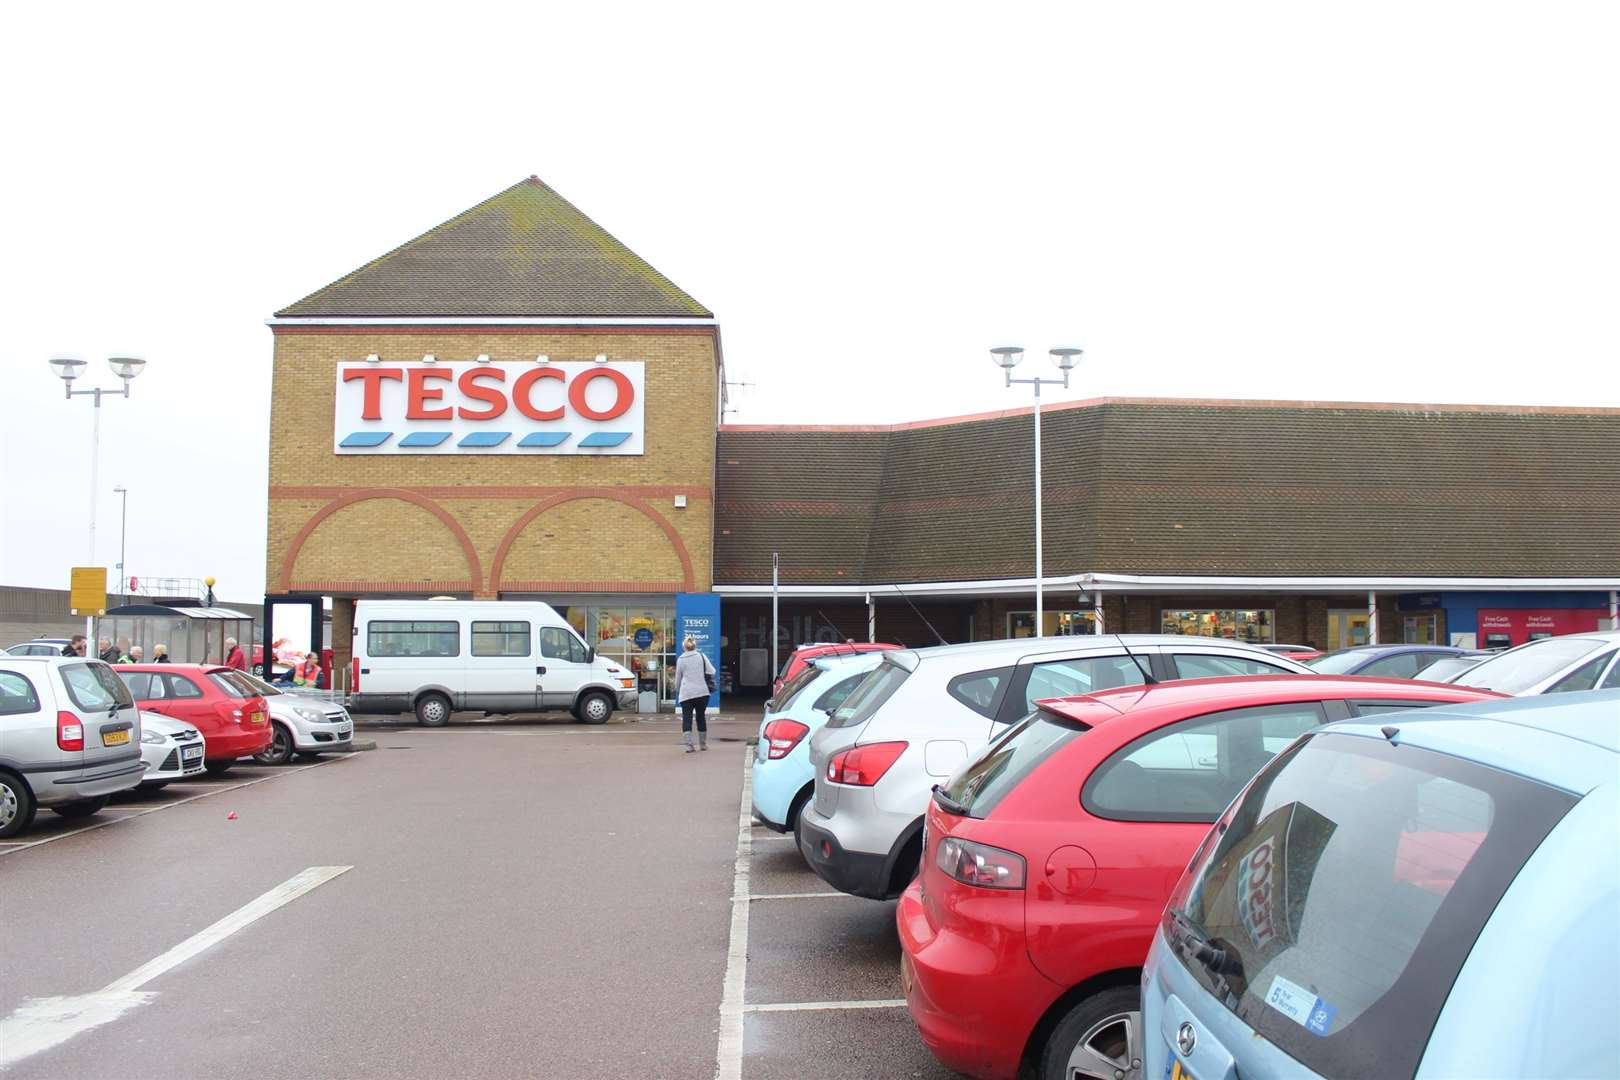 Tesco is among supermarkets recalling products